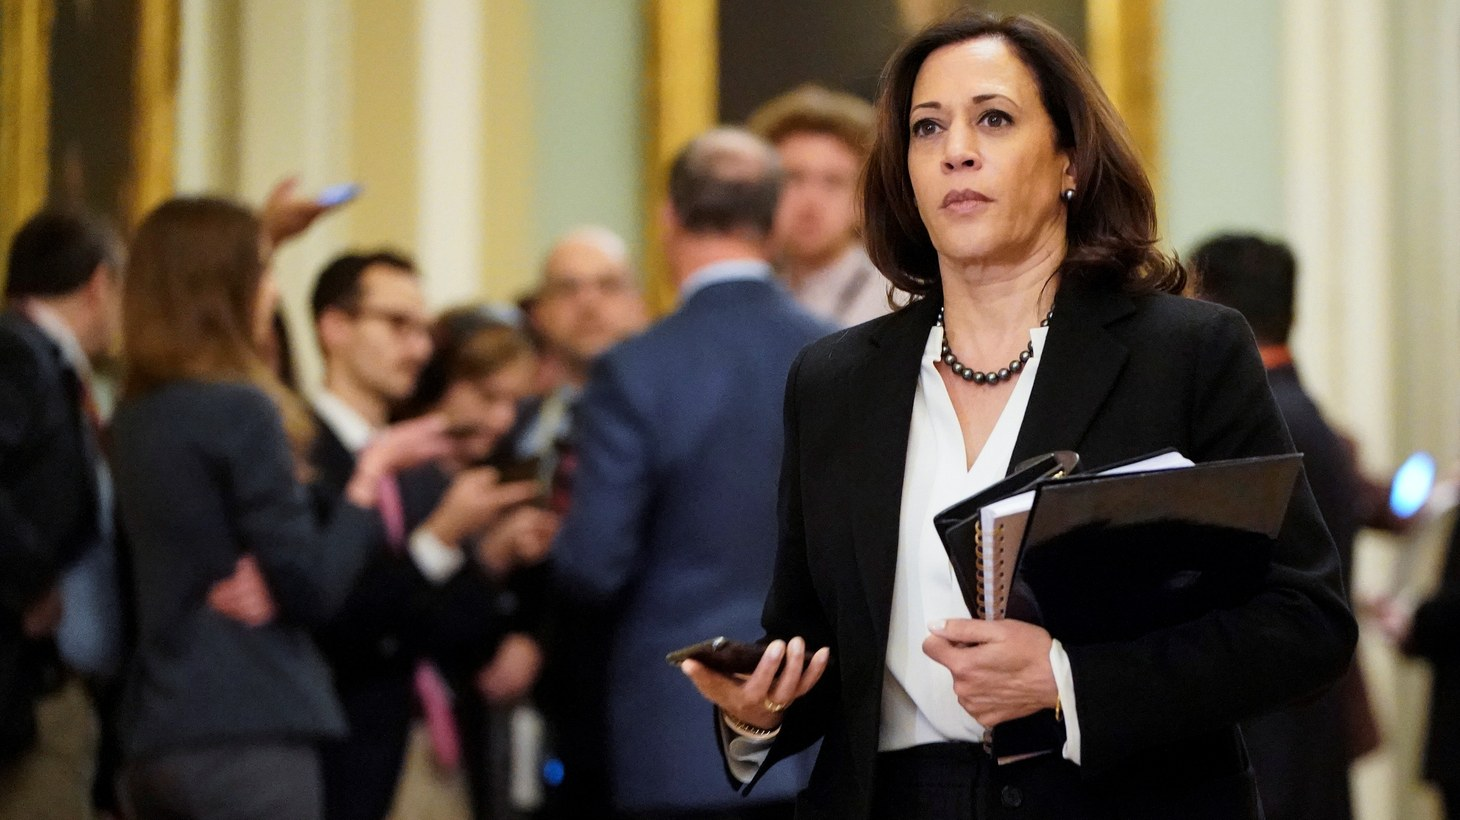 Senator Kamala Harris (D-CA) walks during a break in the impeachment trial of U.S. President Donald Trump continues in Washington, U.S., January 24, 2020.